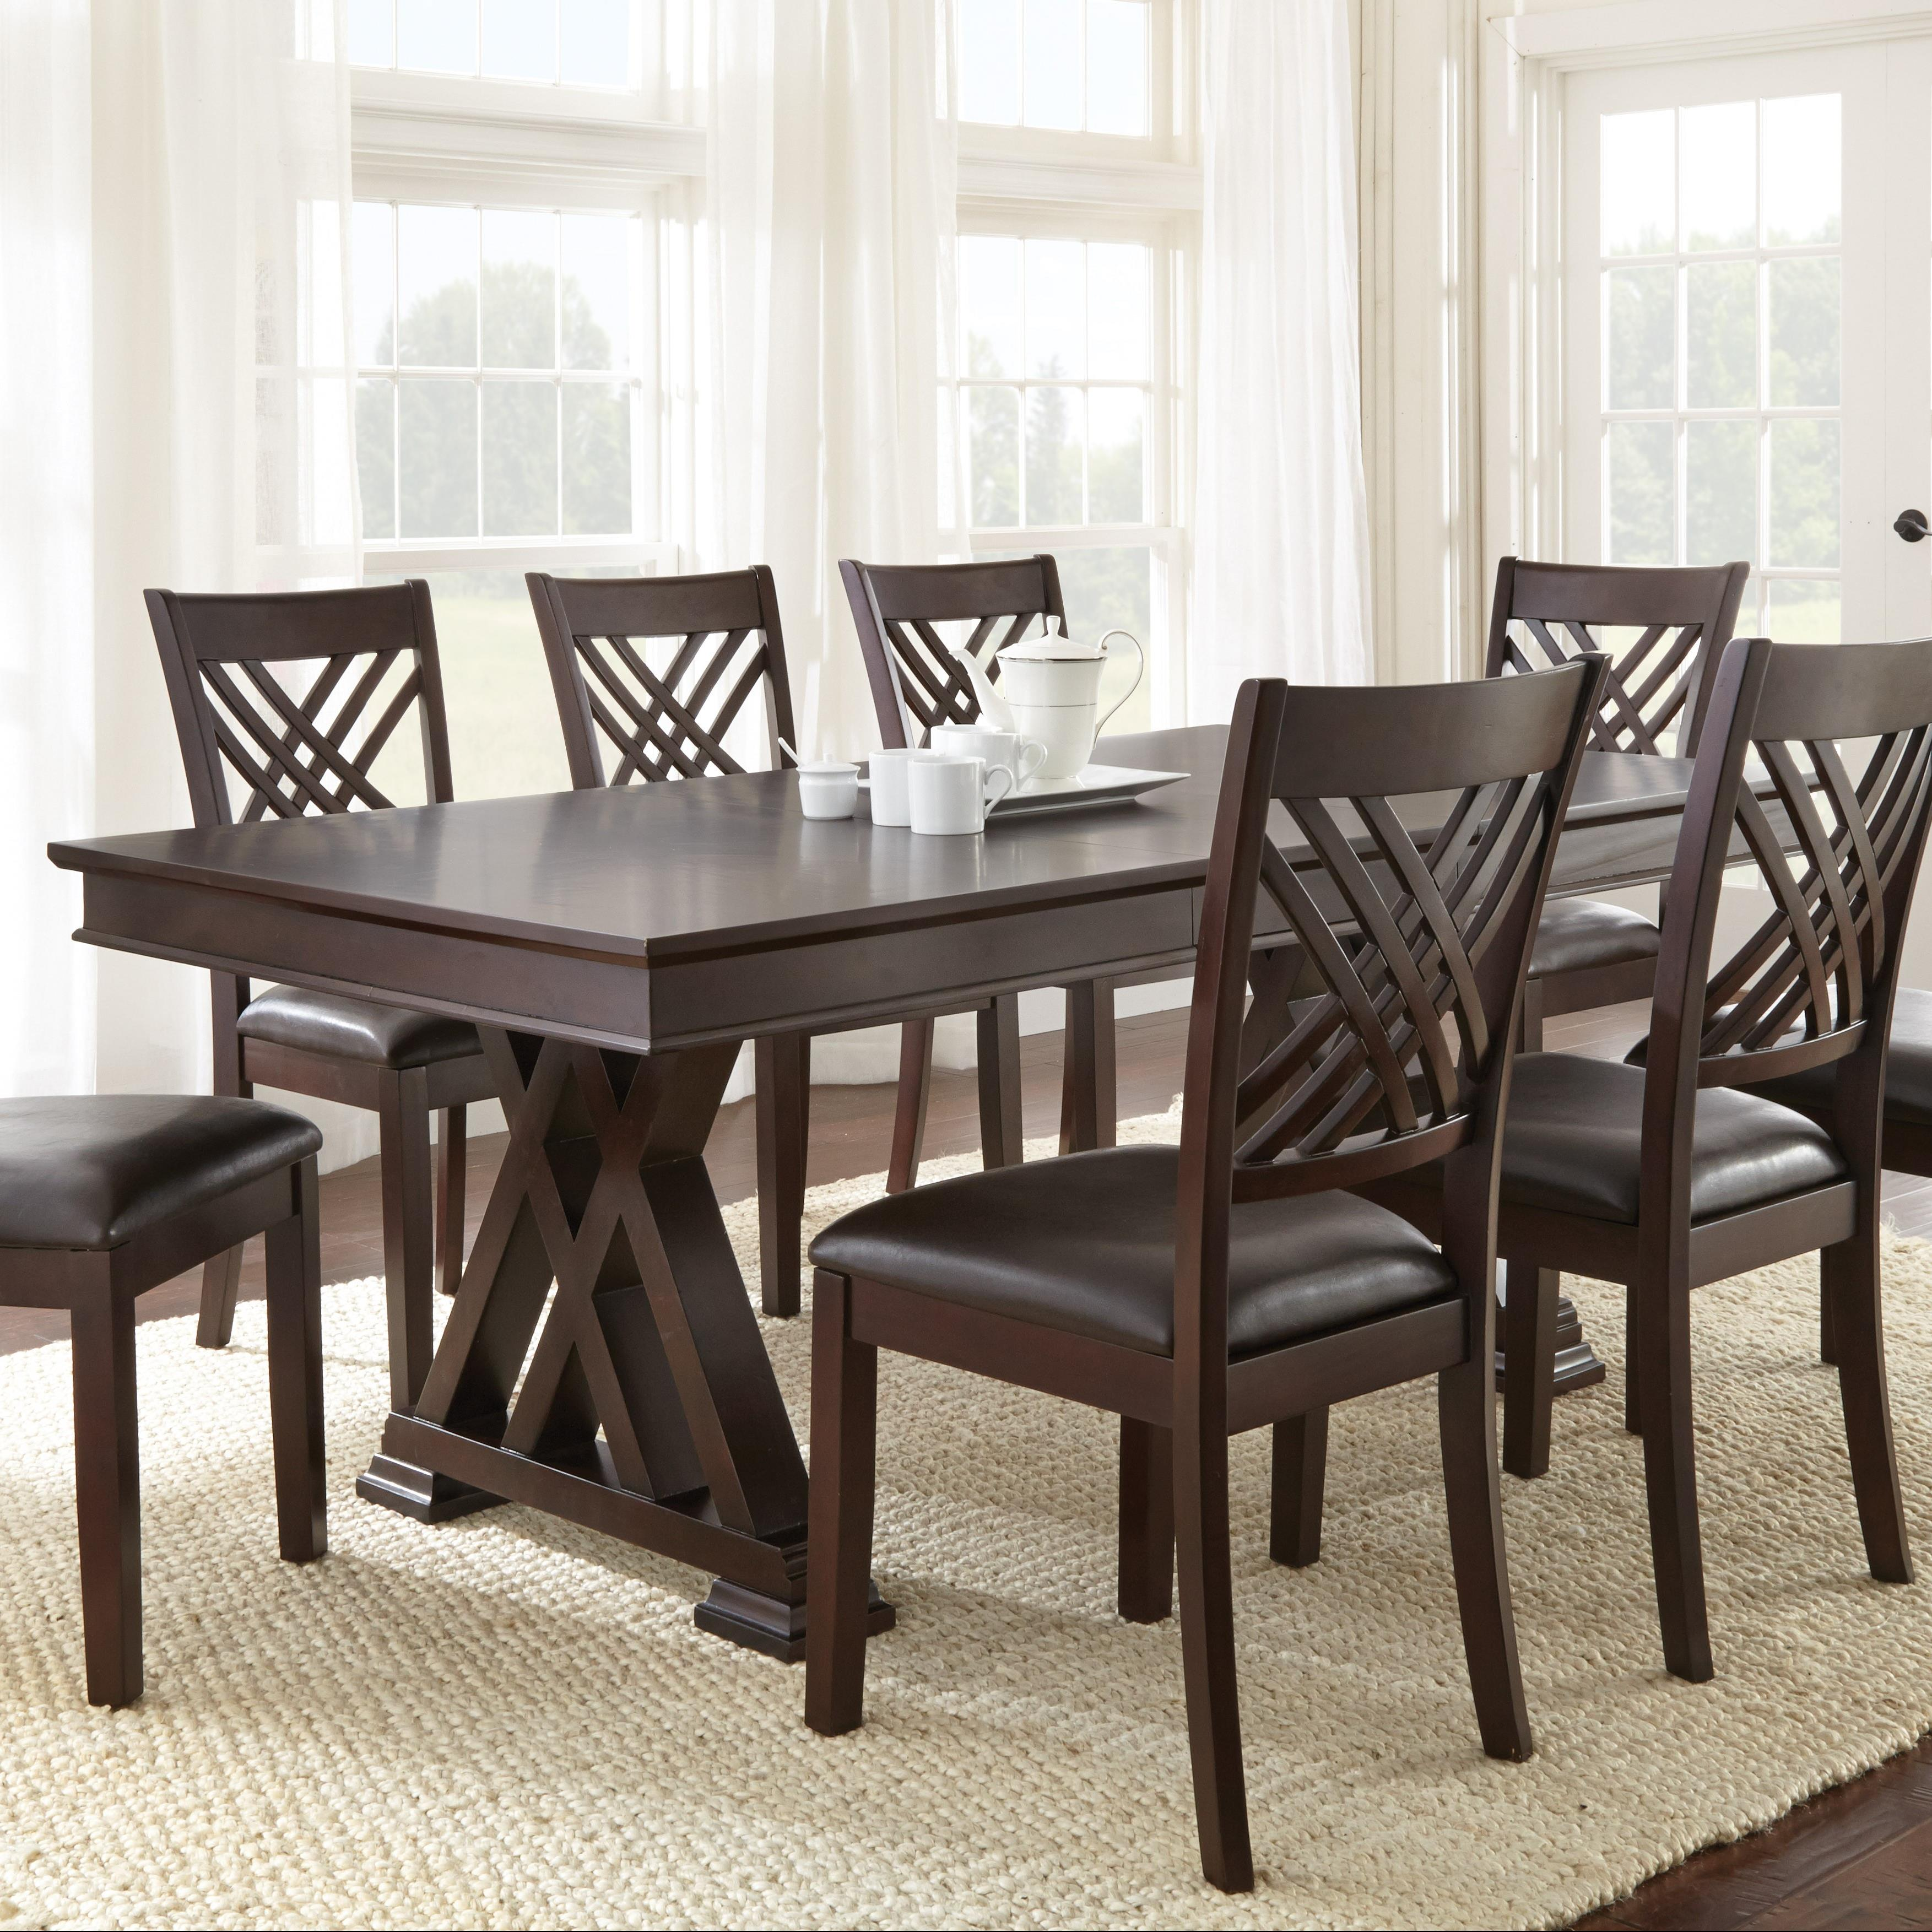 Adrian Dining Table by Steve Silver at Walker's Furniture